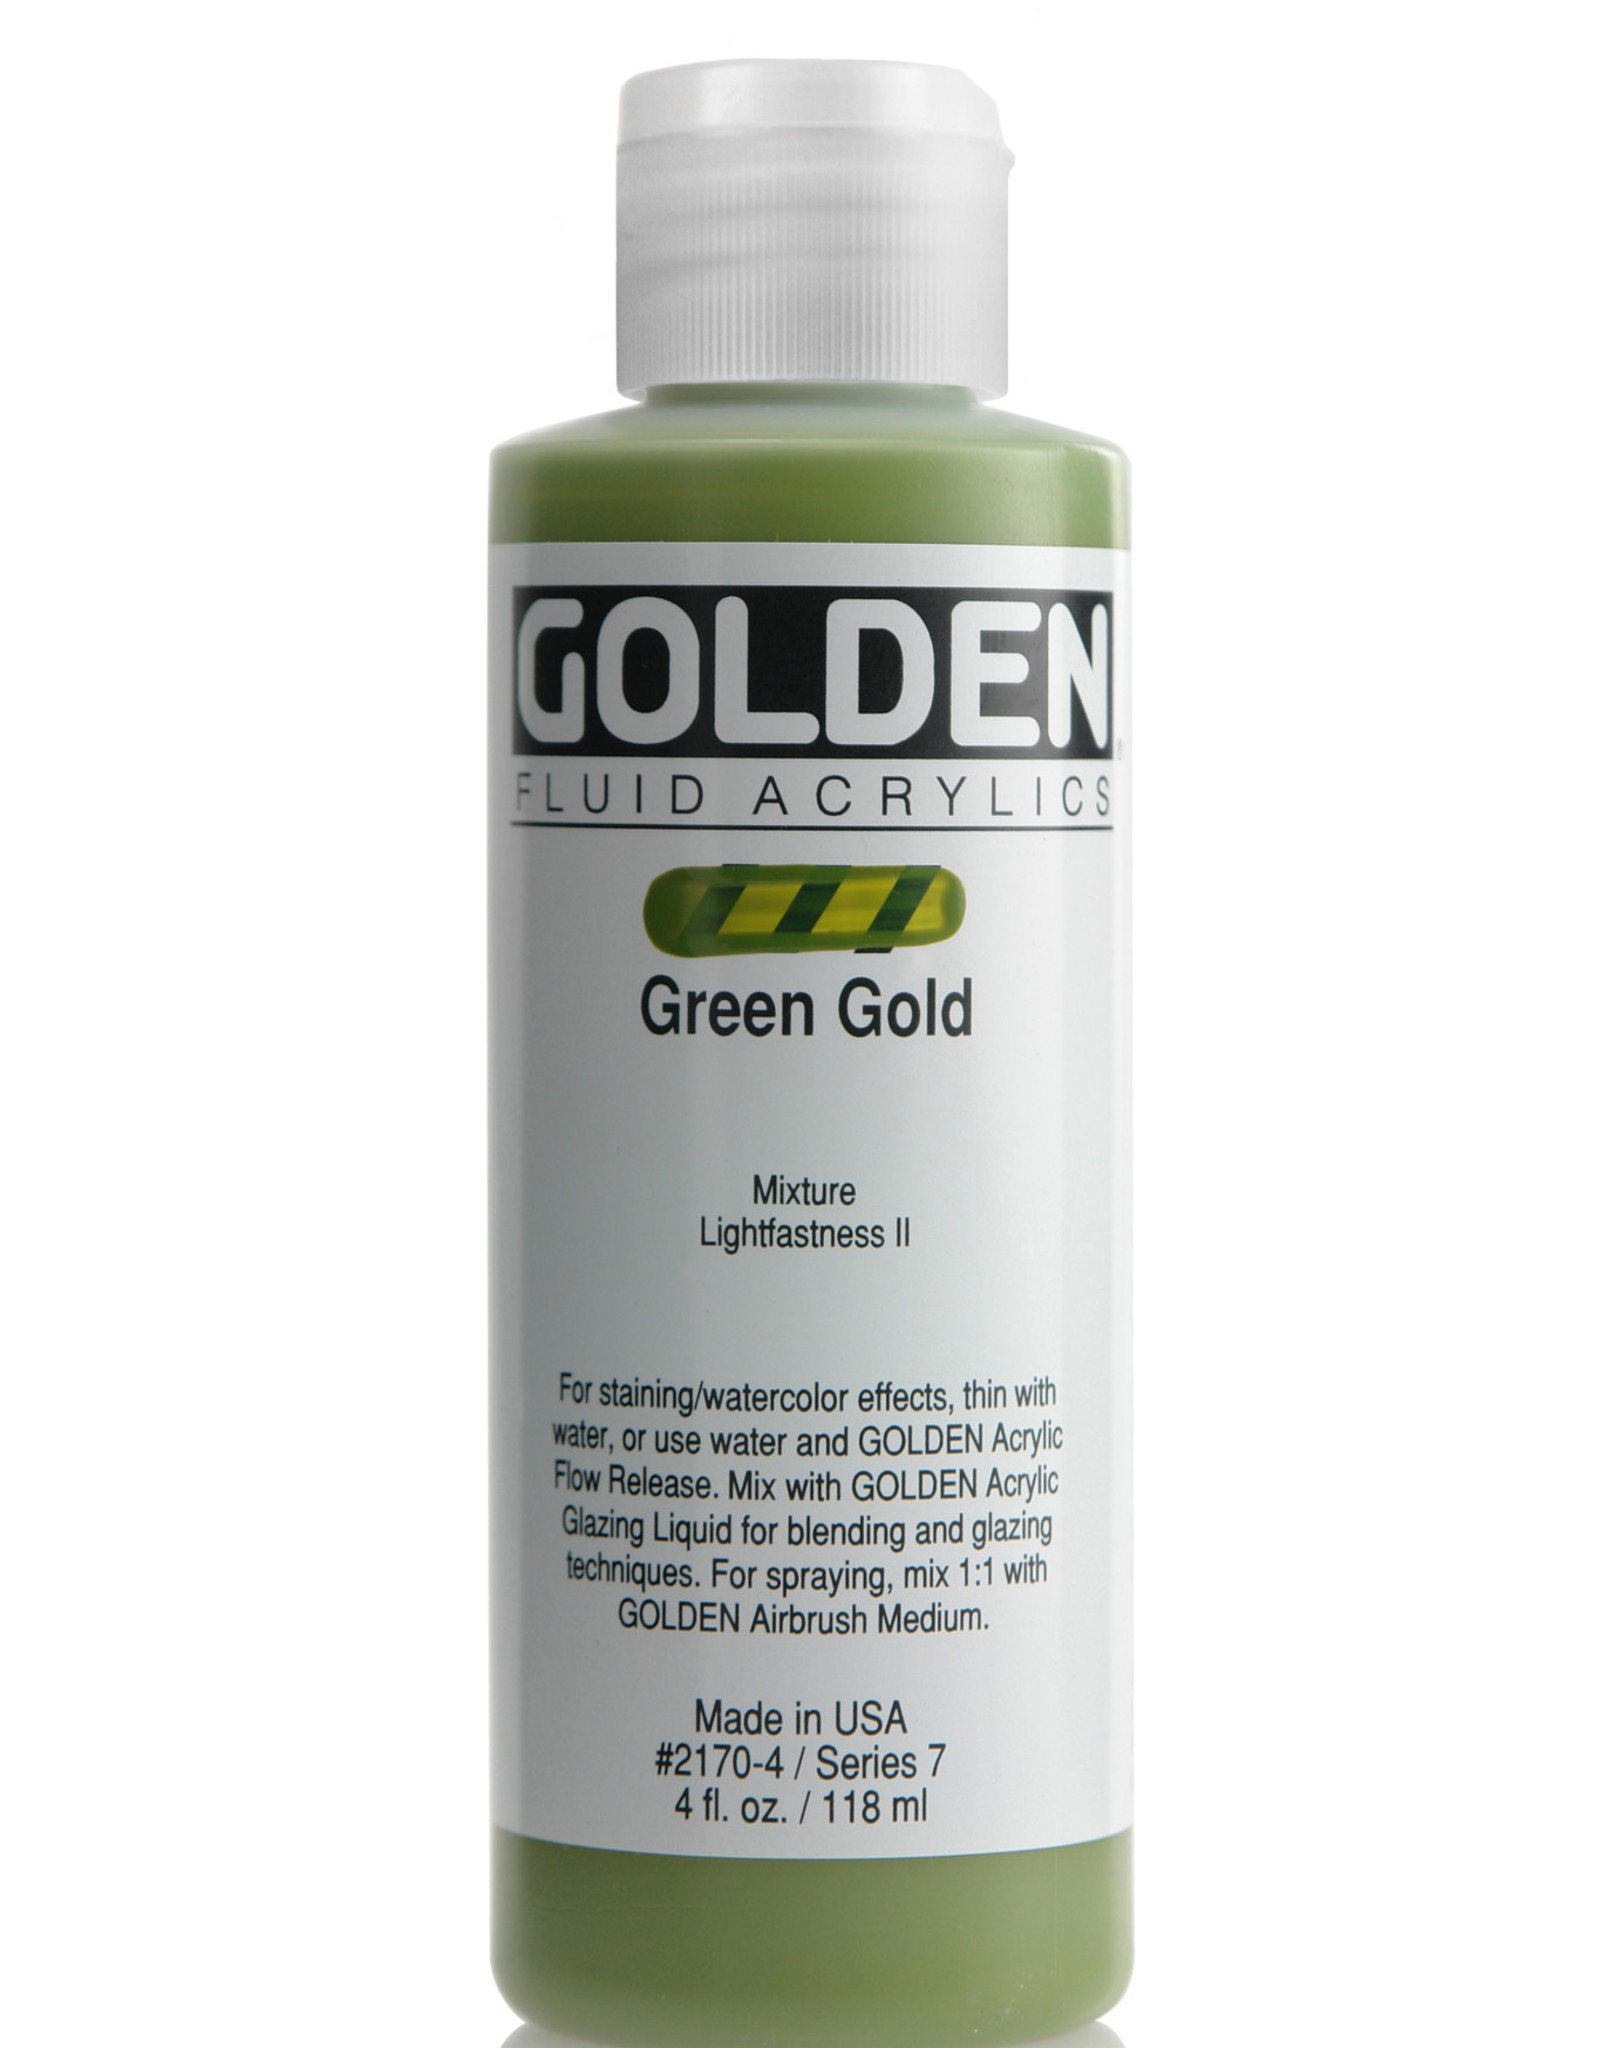 Golden Fluid Acrylic Paint, Green Gold, Series 7, 4fl.oz, Bottle